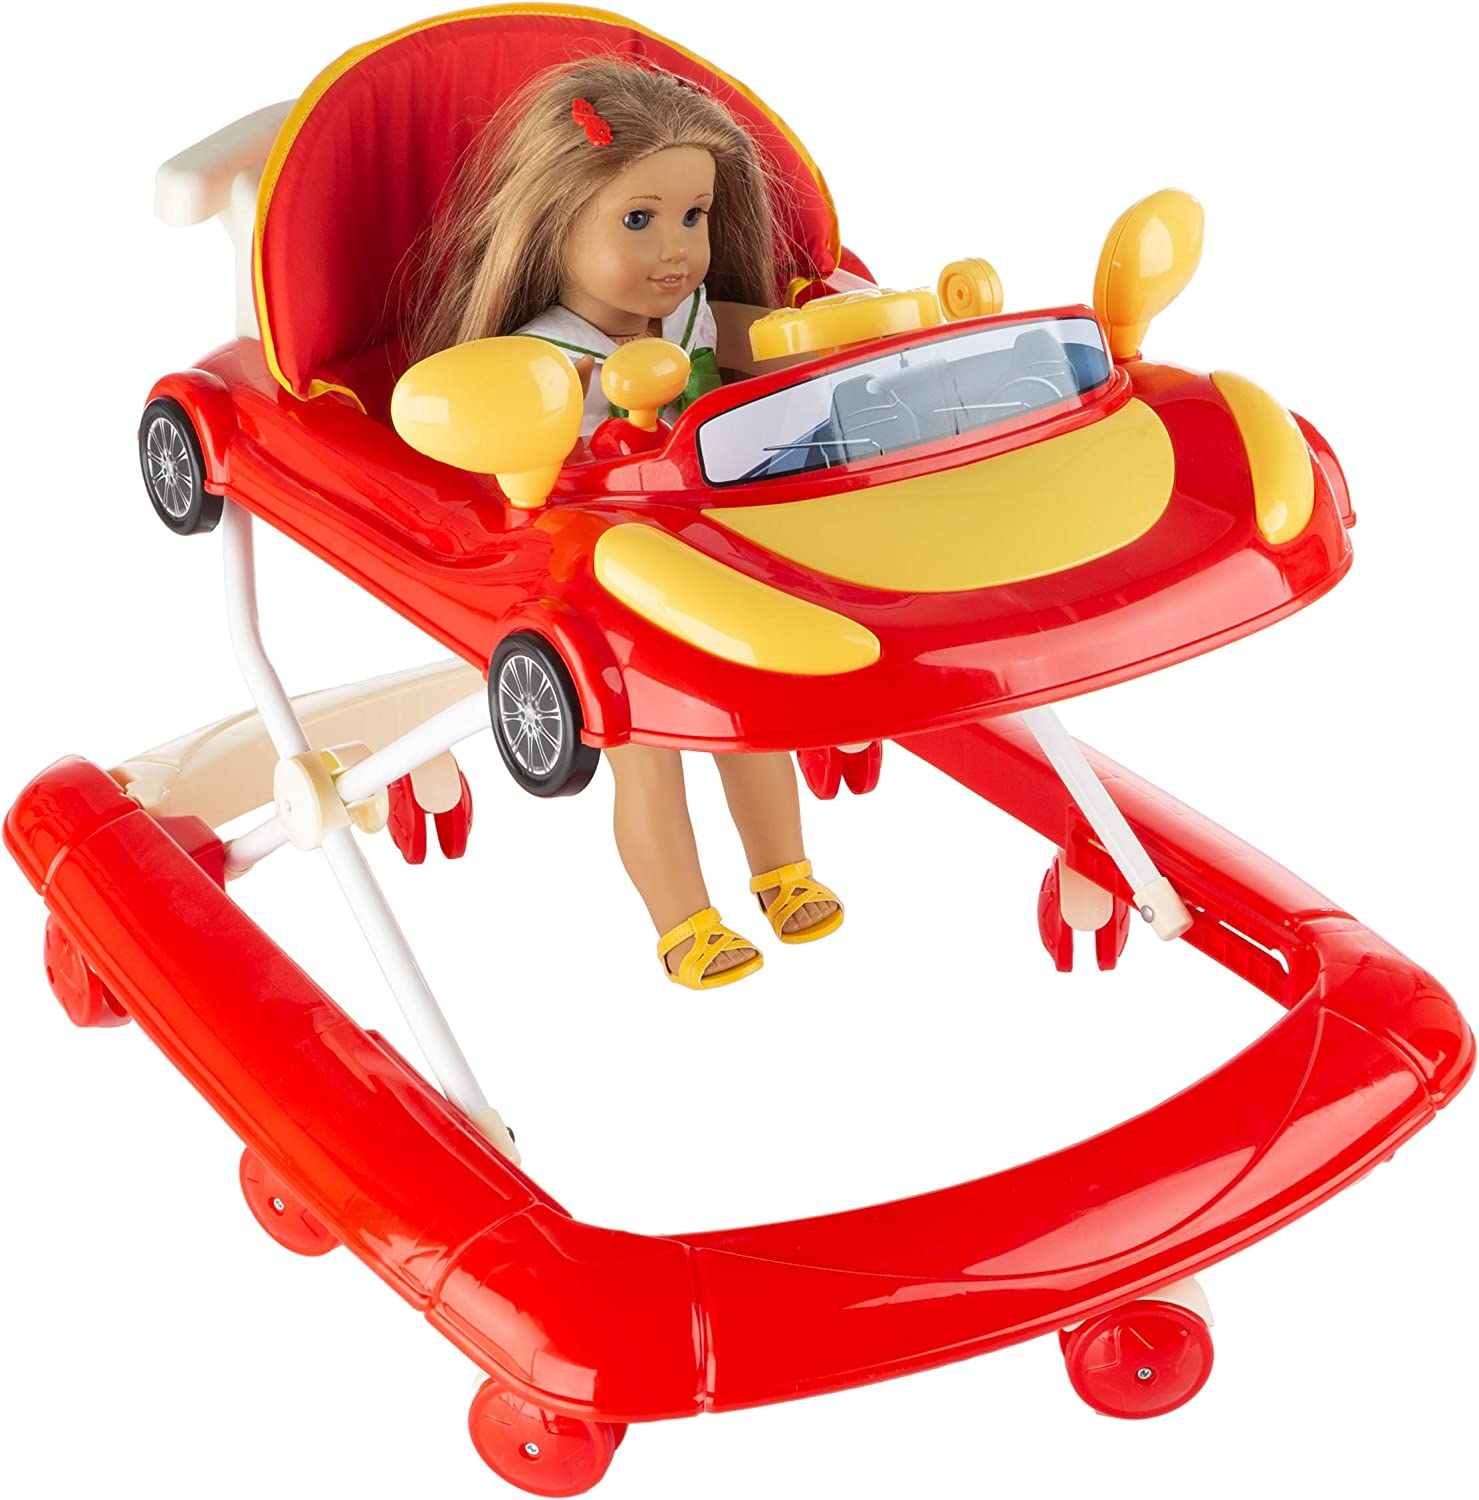 Hey! Play! Doll Walker-Baby Doll & Stuffed Animal Mobile Push Toy with Fun Car Design-Adjustable Height for Different Sized Toys-Play Accessories